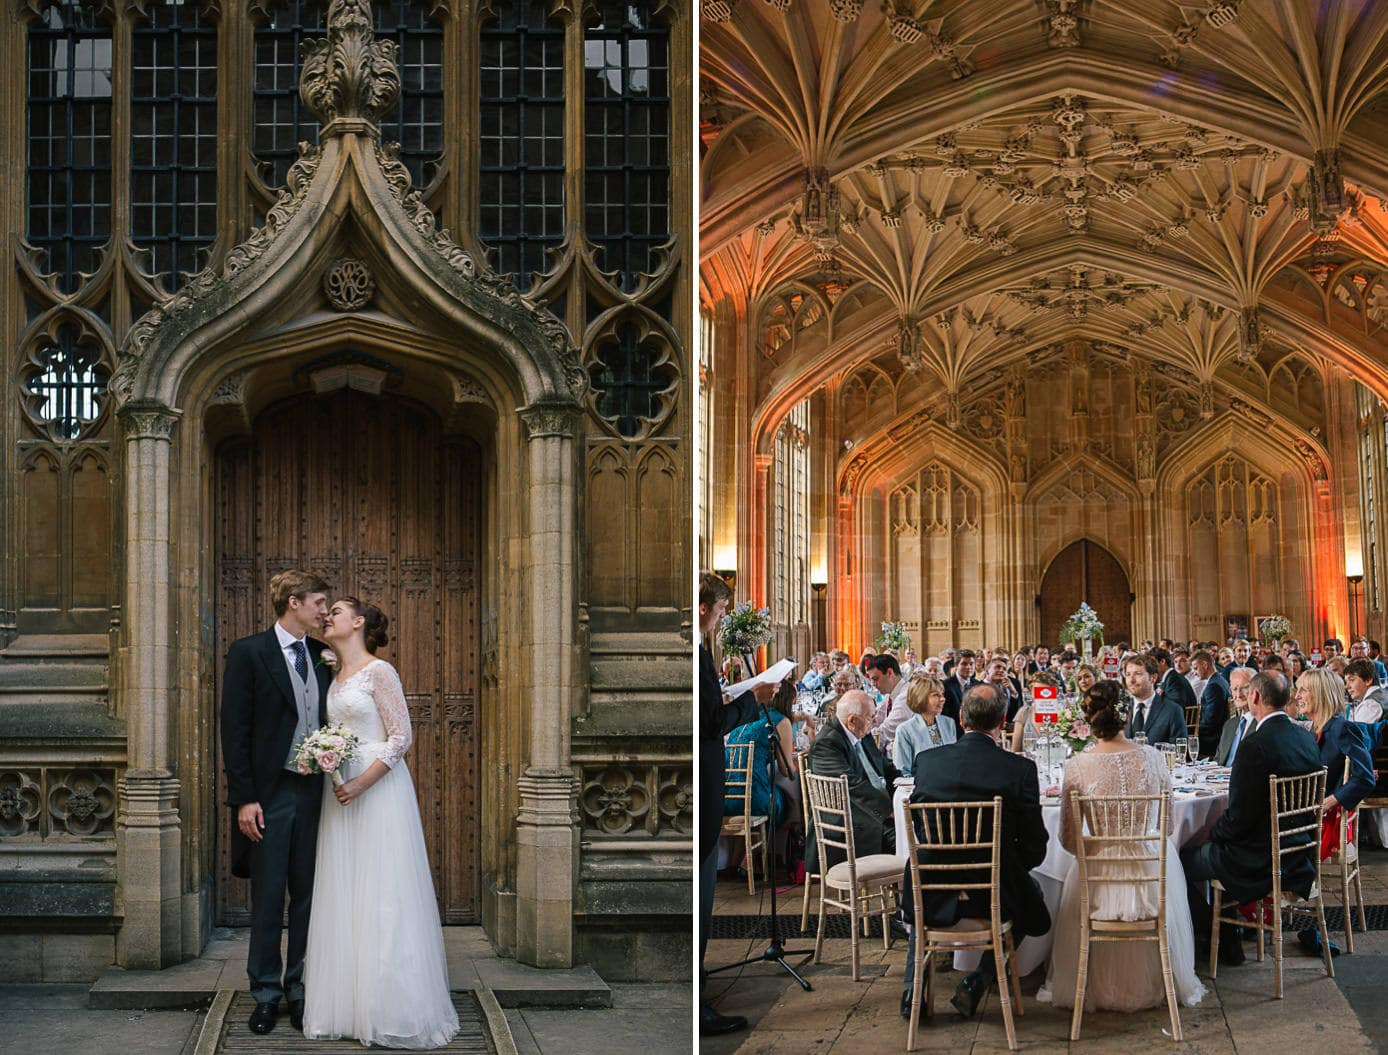 Wedding at teh Bodleain Library in Oxford